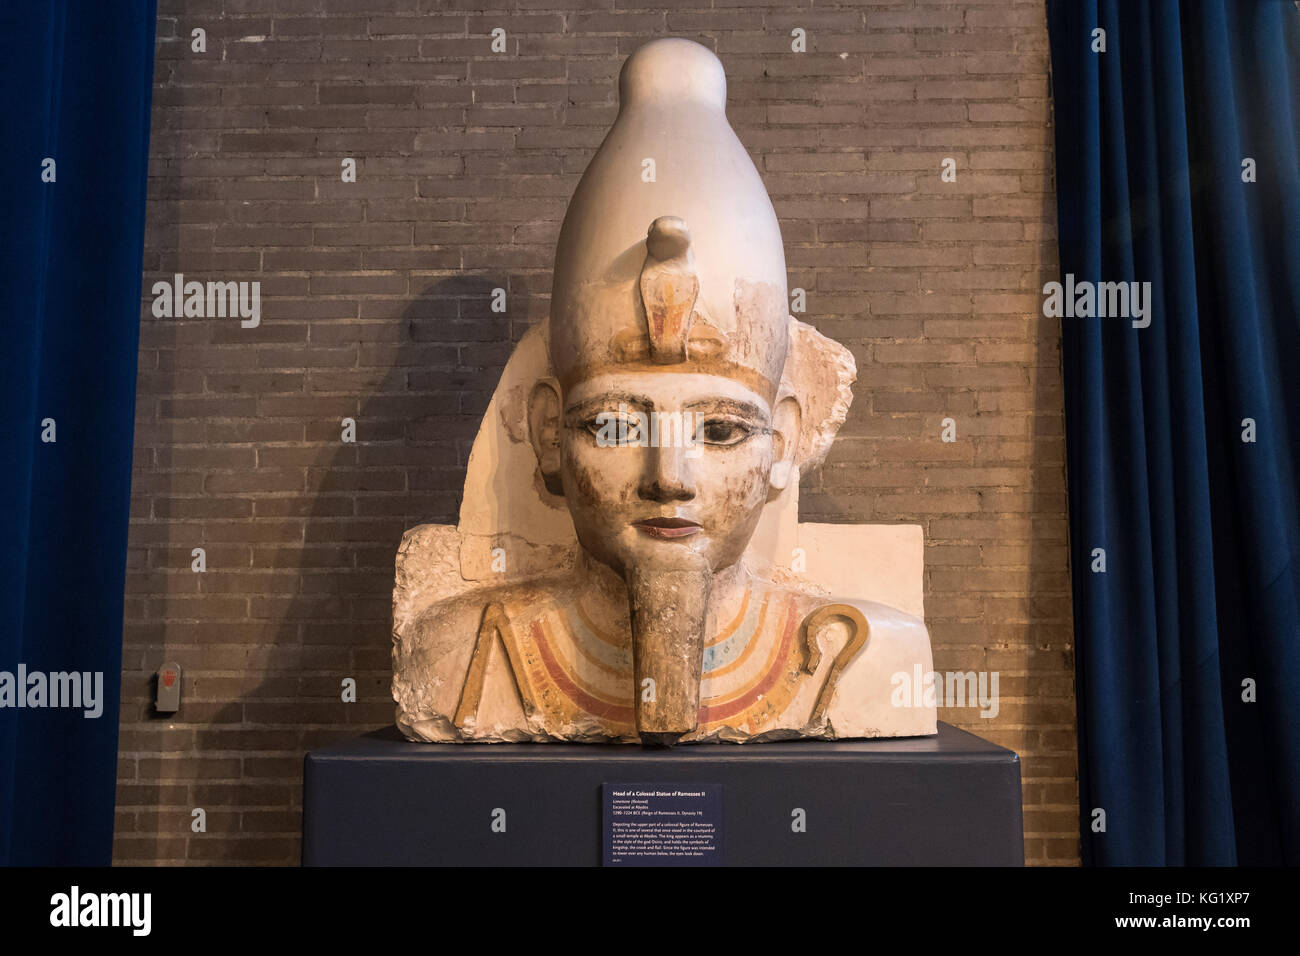 an analysis of the statue of ramesses ii in the university of pennsylvania museum of archaeology and Ramses ii was the pharaoh who would have one of the longest  the egyptian  archaeological and textual sources, however, are mute on this.